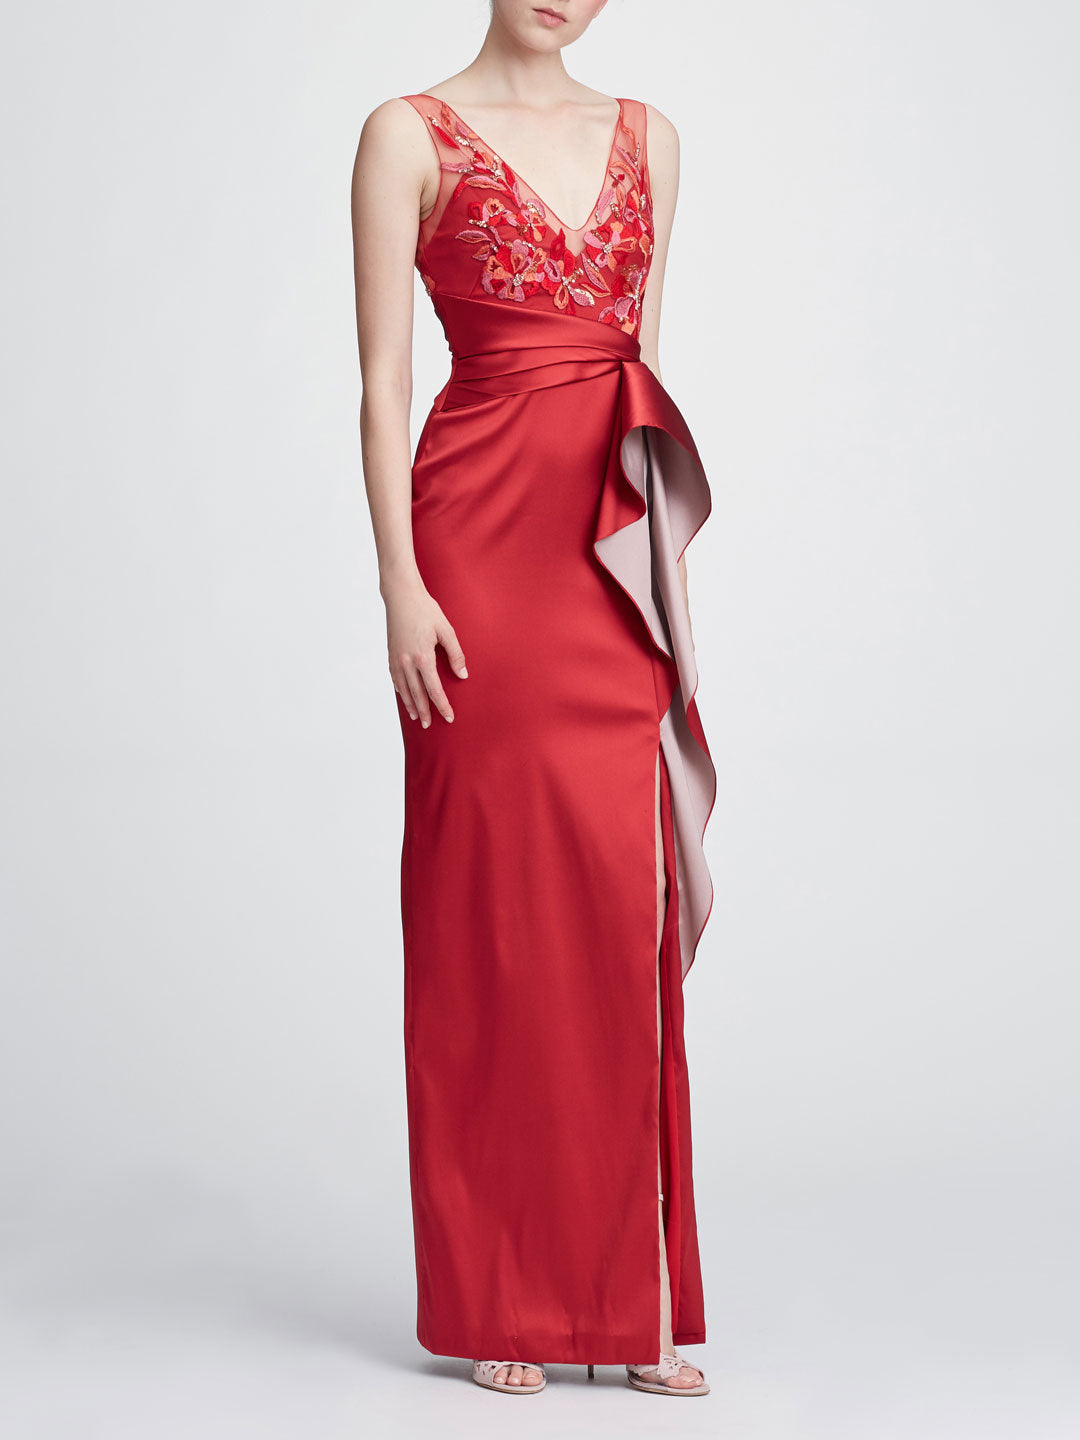 Sleeveless two-toned column gown